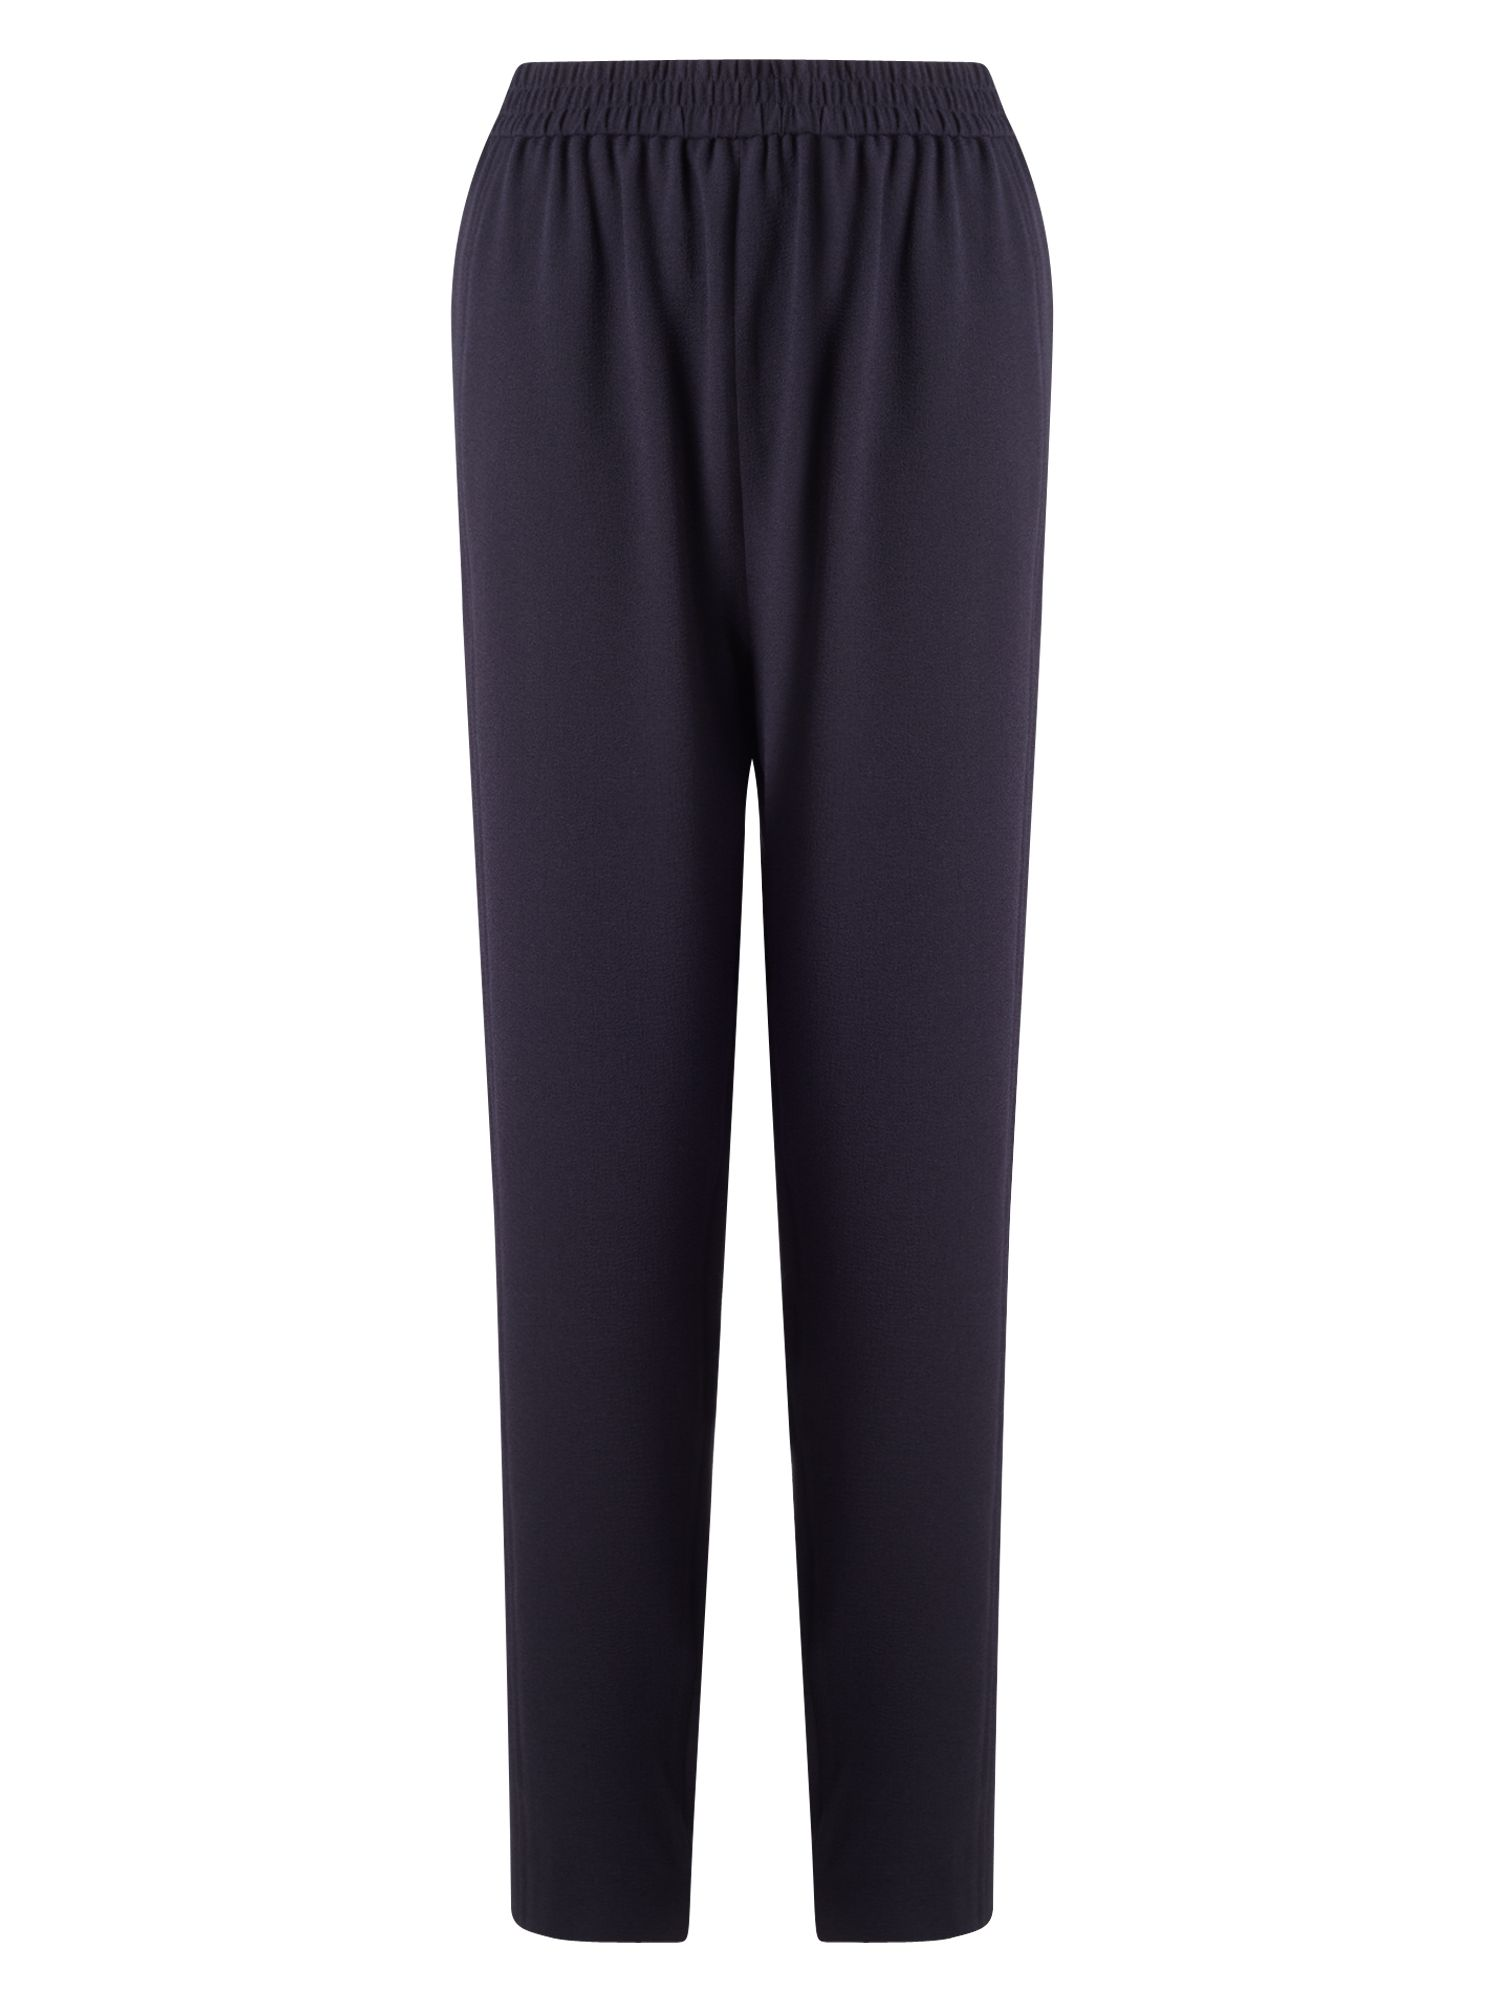 East Crepe Trousers, Blue